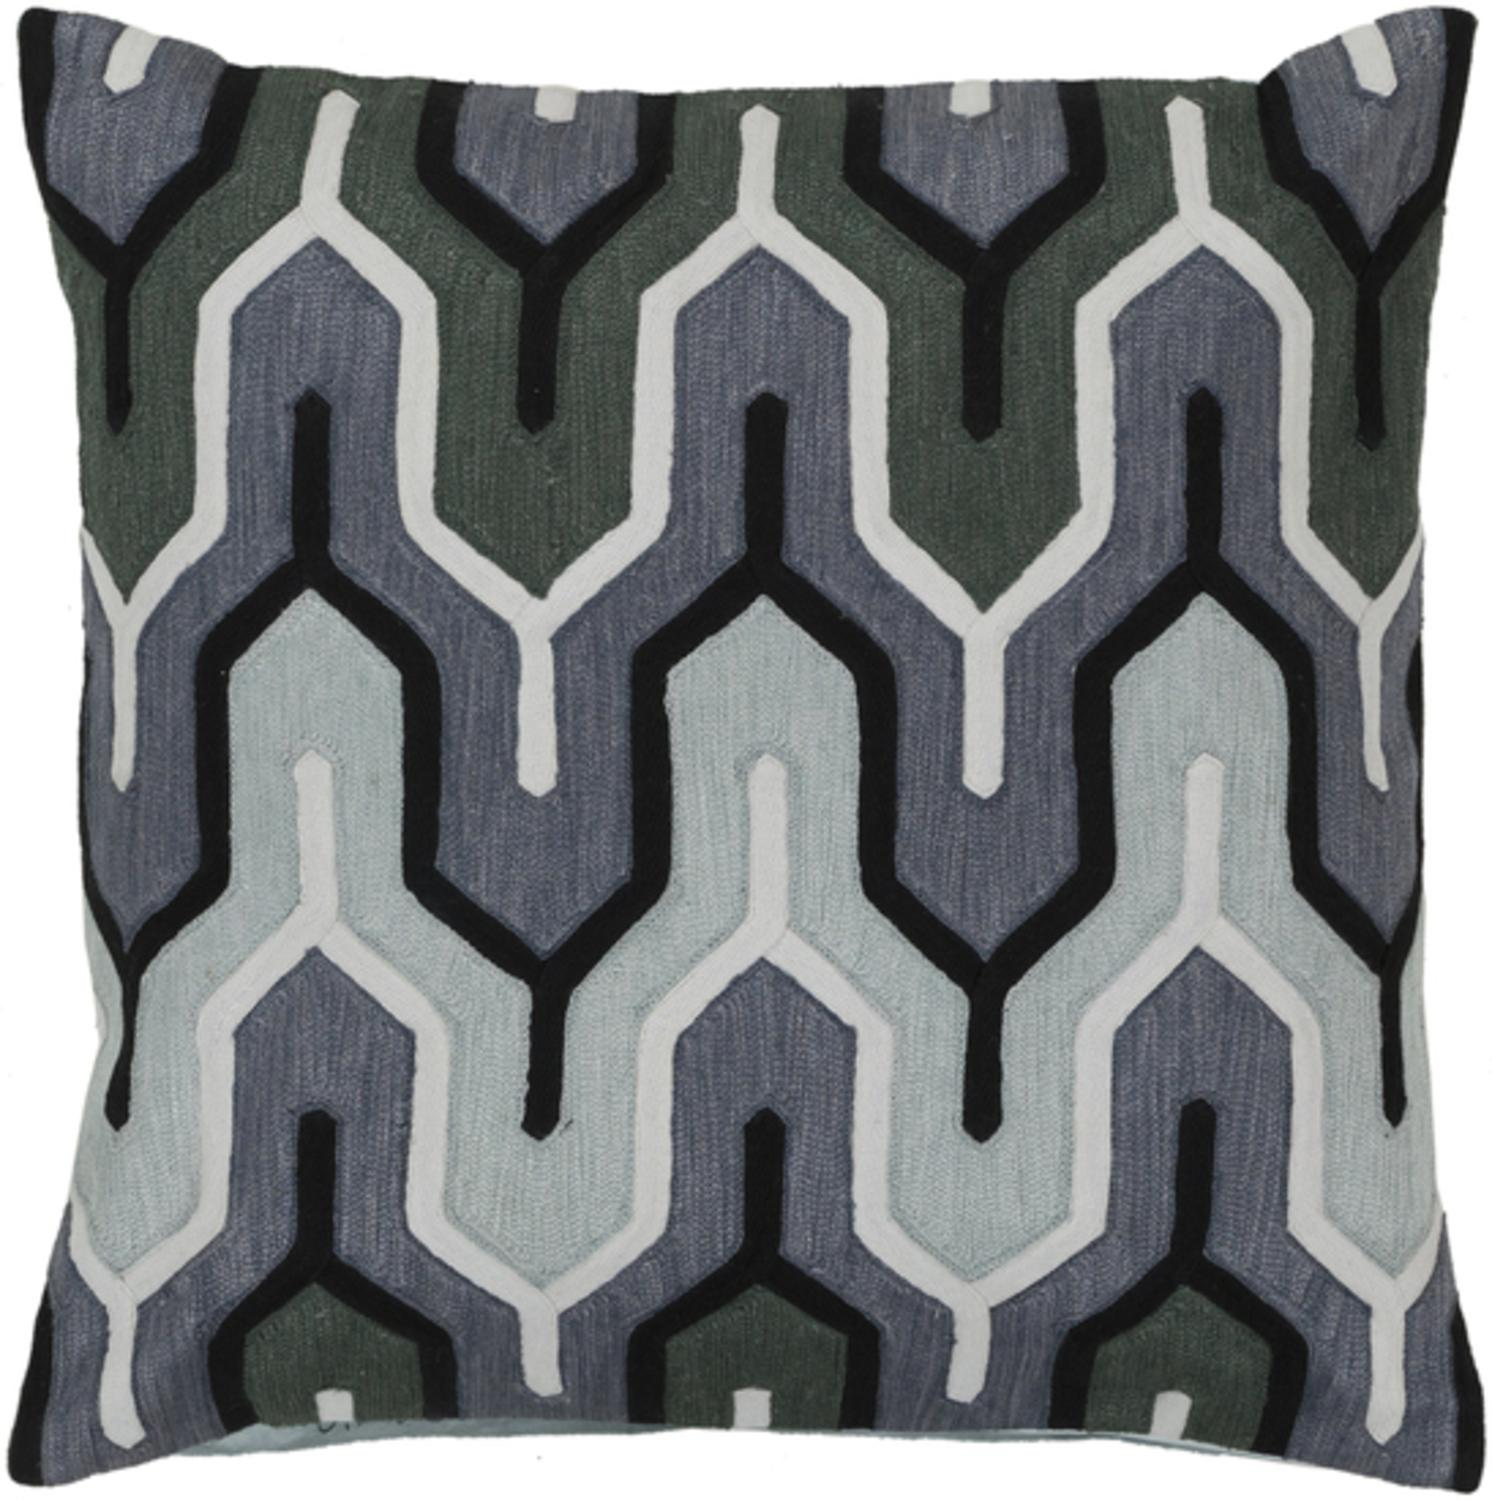 "22"" Belvedere Stripes Gray, Black and Green Decorative Square Throw Pillow Down Filler by Diva At Home"